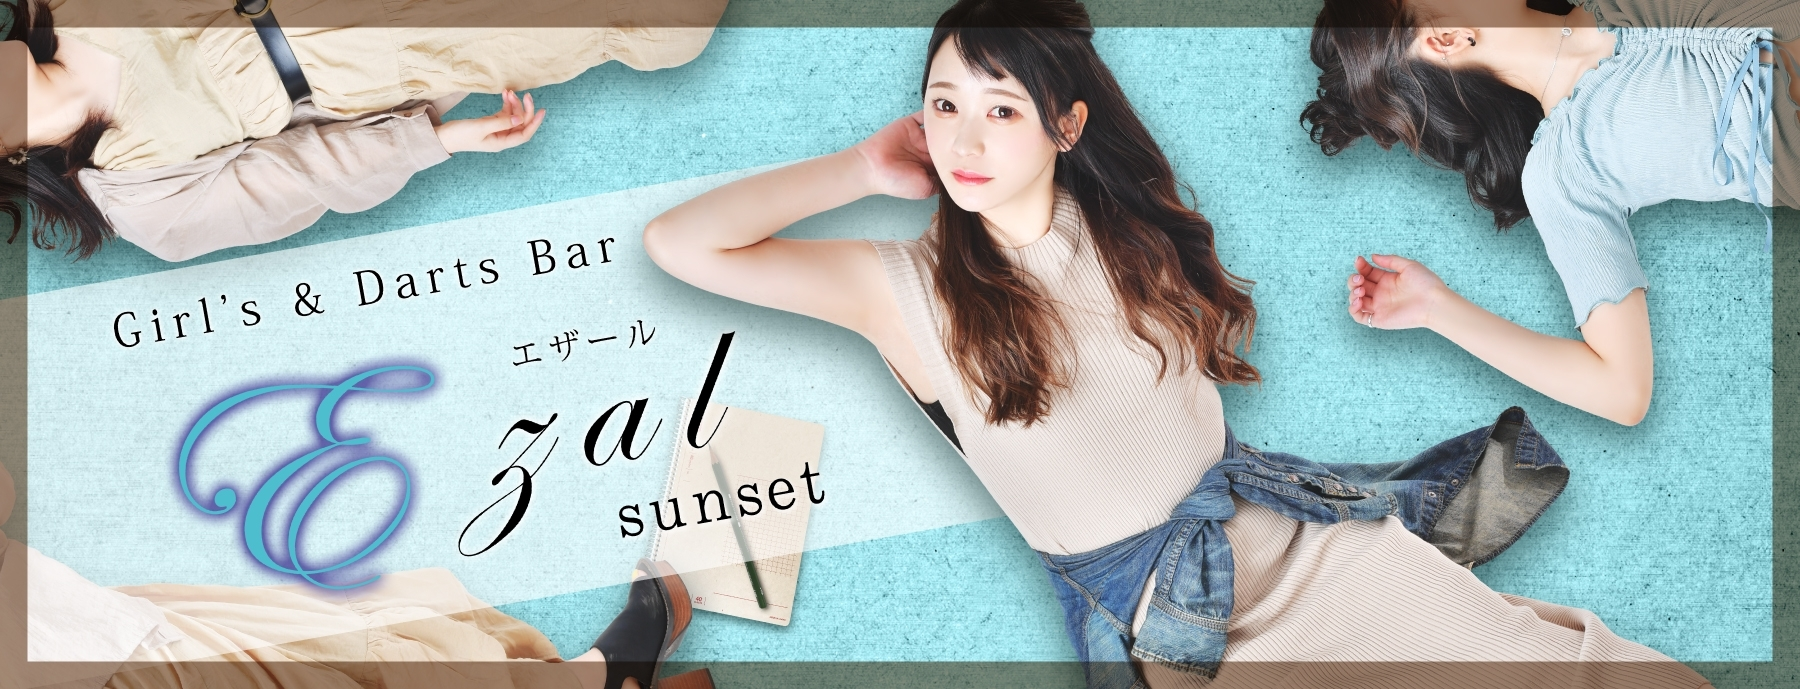 Girl's & Darts Bar Ezal sunset 〜エザールサンセット〜